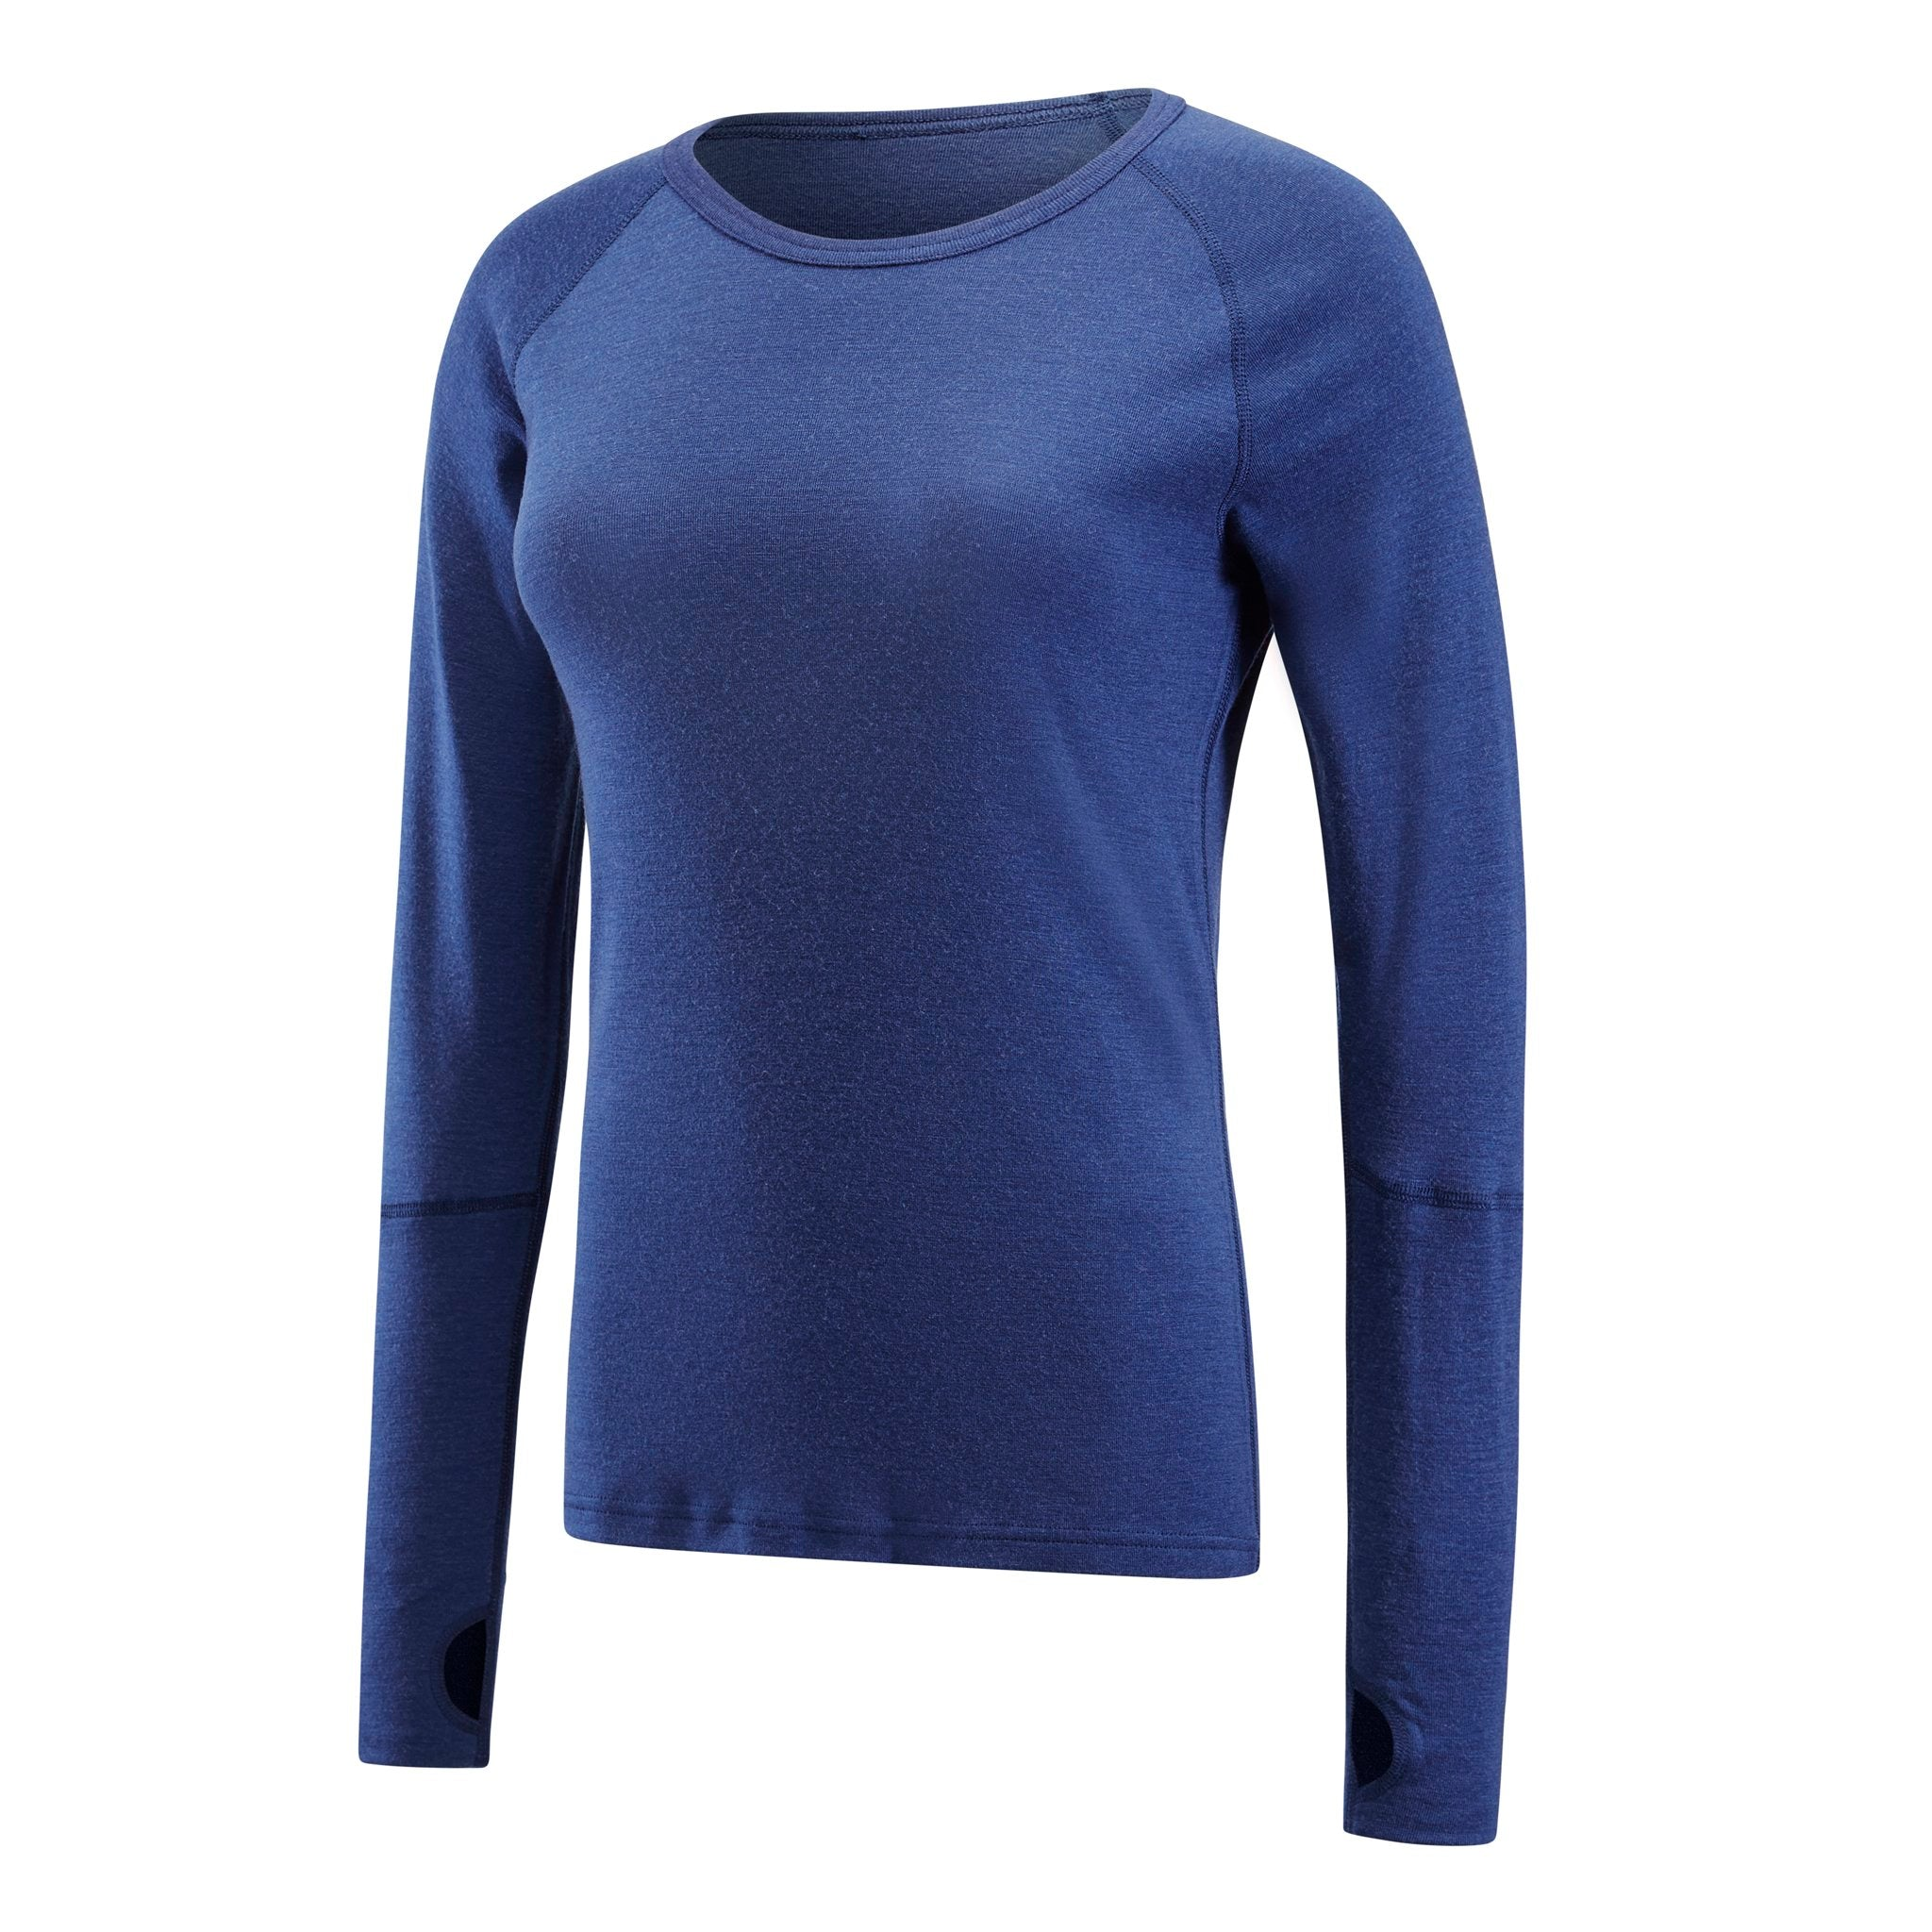 92d85908ace Armadillo Merino® next to skin merino wool clothing for for extreme users  and conditions.